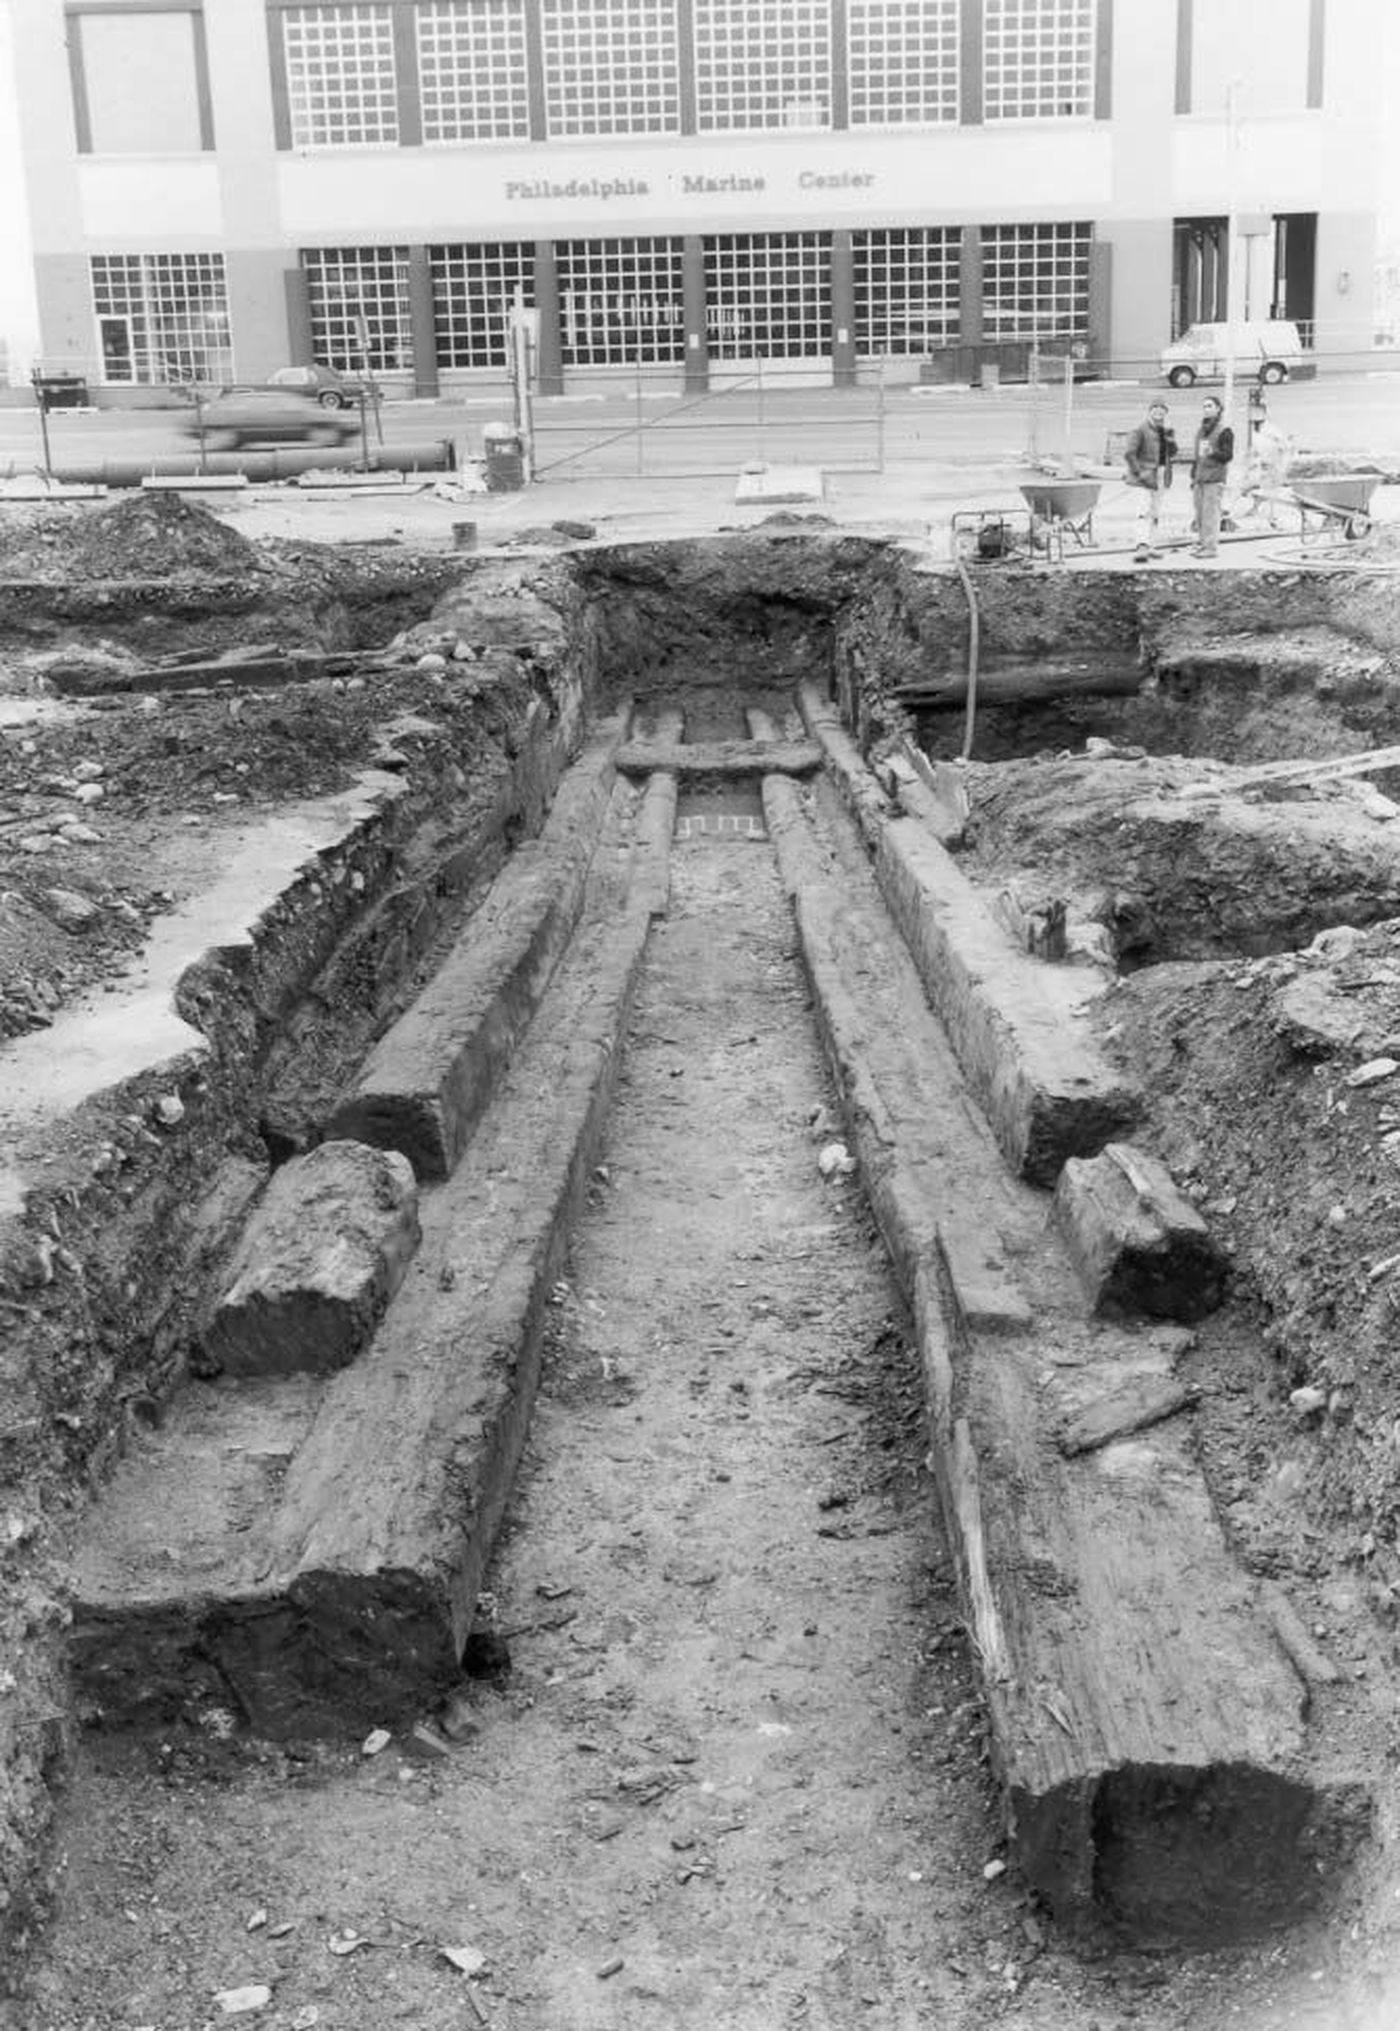 The slipway excavated during a 1987 dig at Vine Street Lot site. The Philadelphia Marine